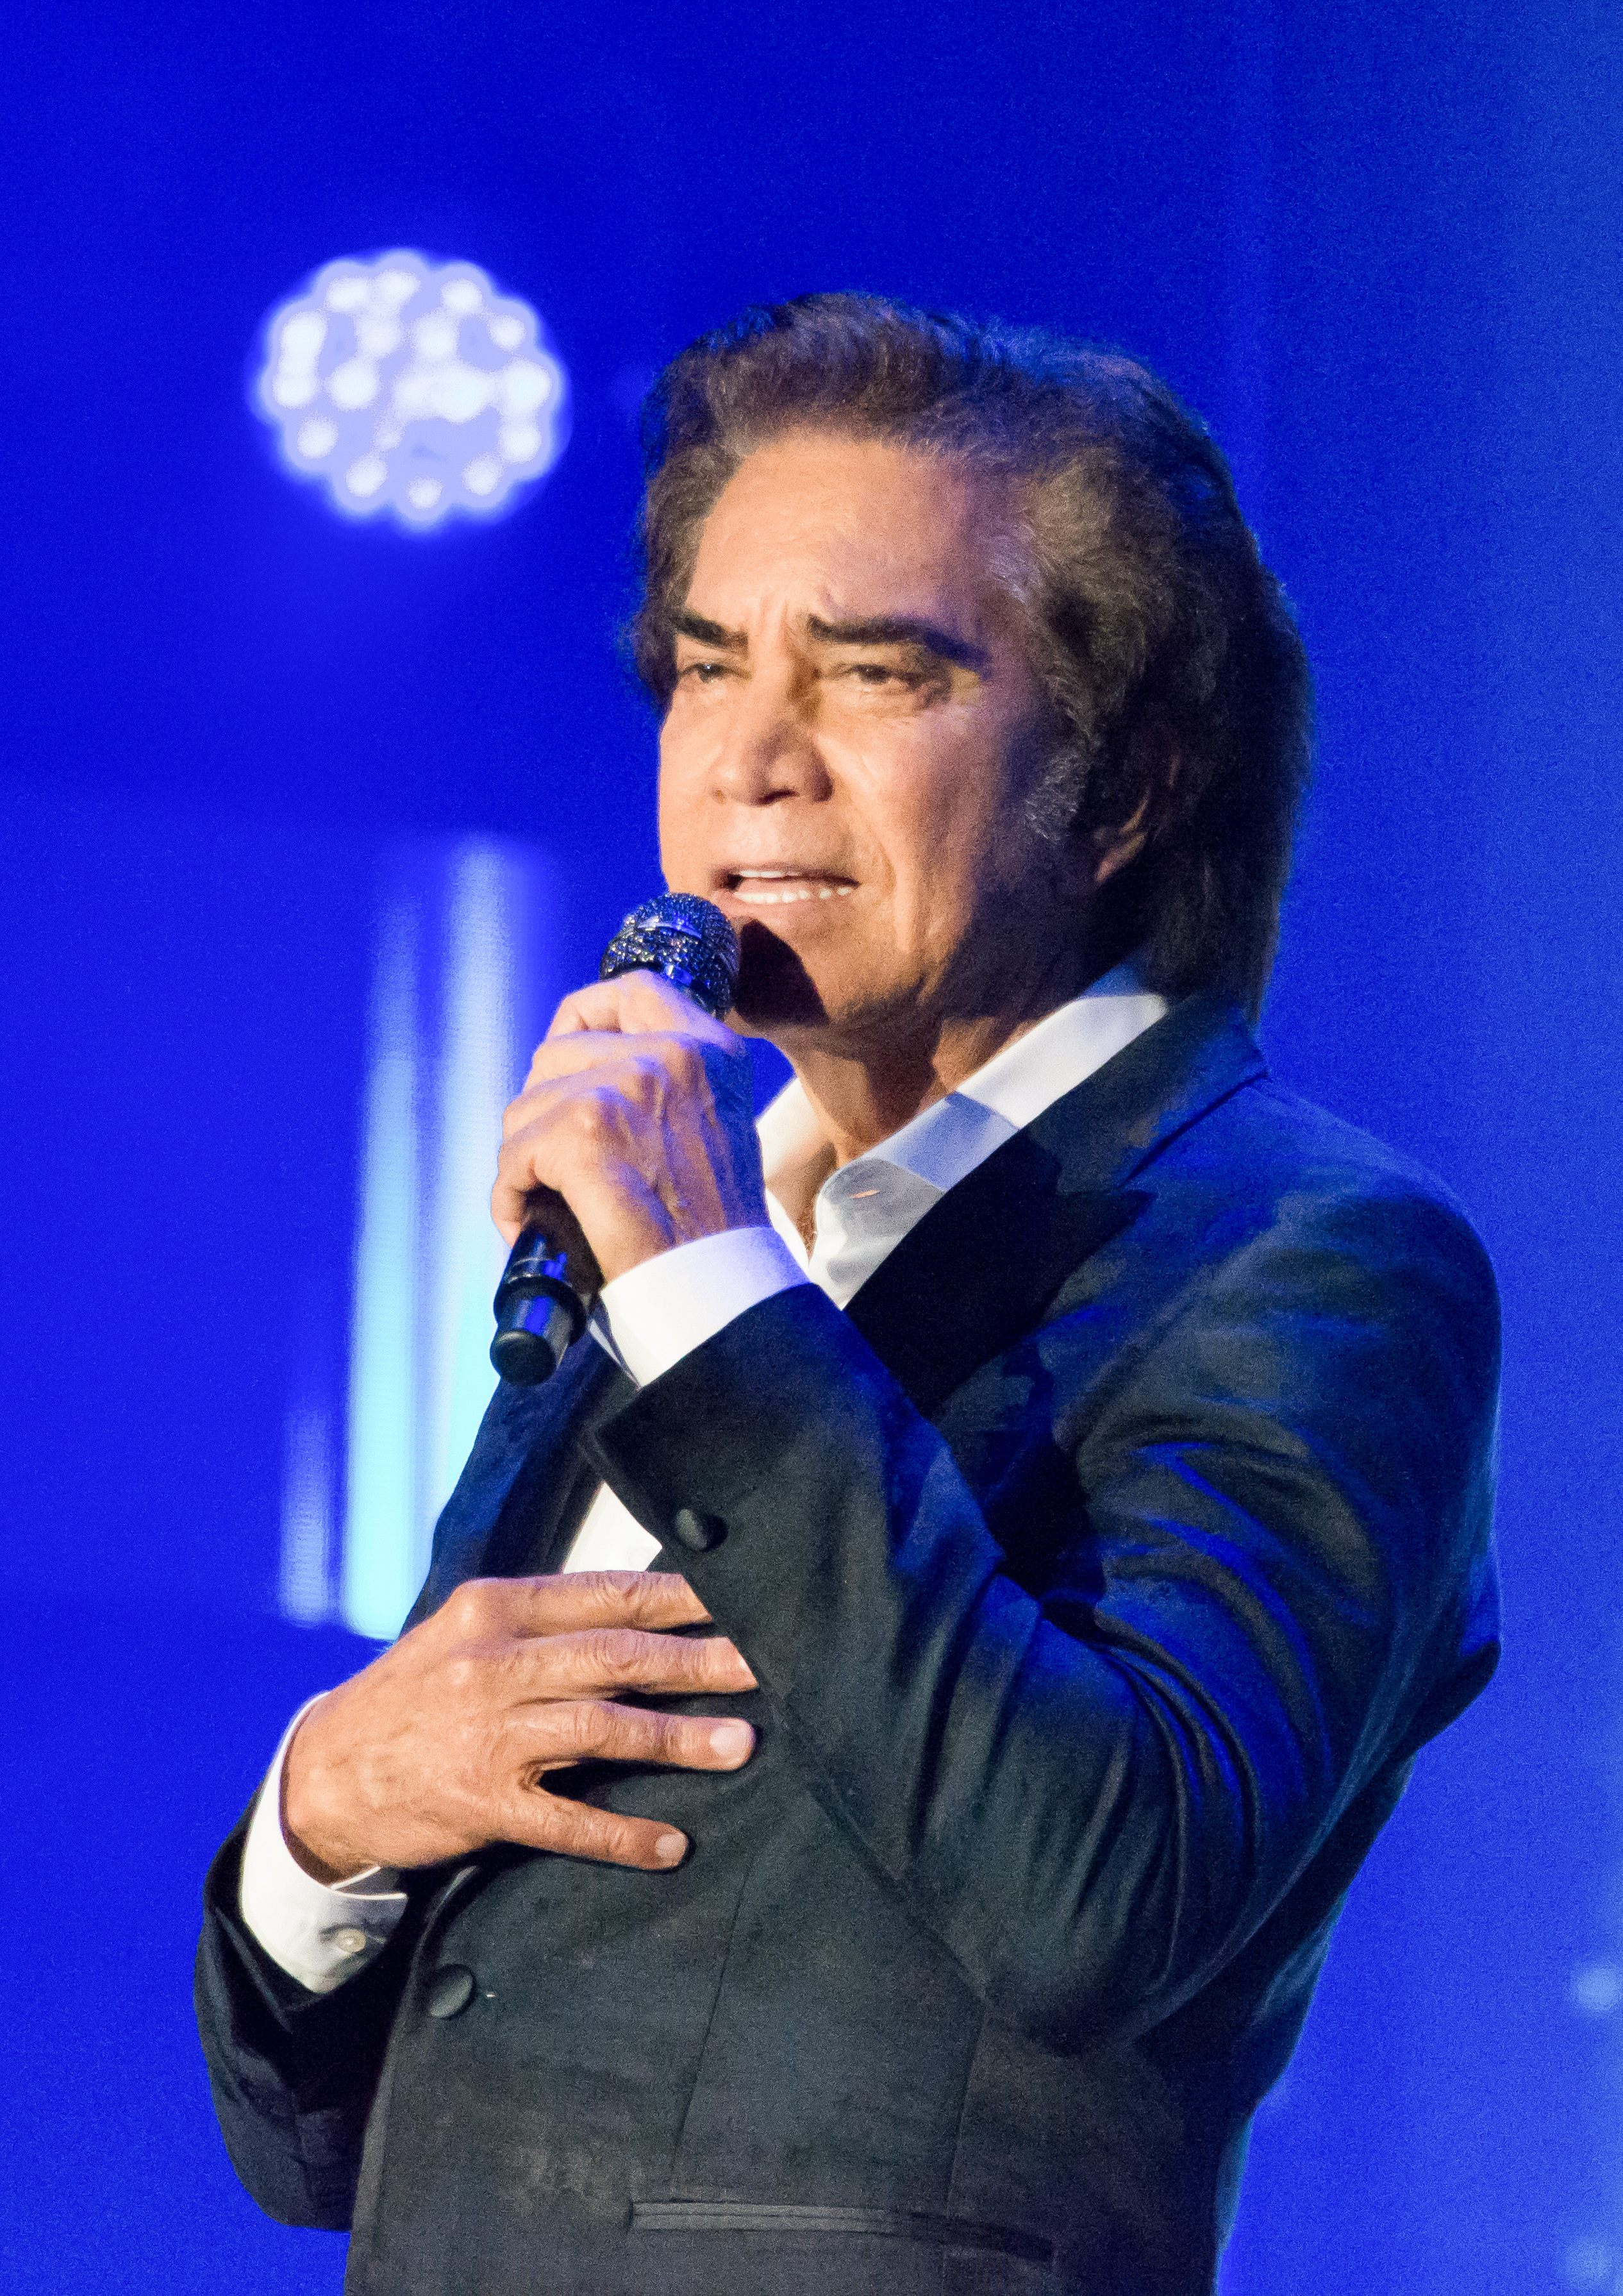 Jose Luis Rodriguez Cantante Wikipedia La Enciclopedia Libre Spending too much time in soccer games at school, his low academic performance forced his mother to send him to 'la prensa' newspaper in order to get more. wikipedia